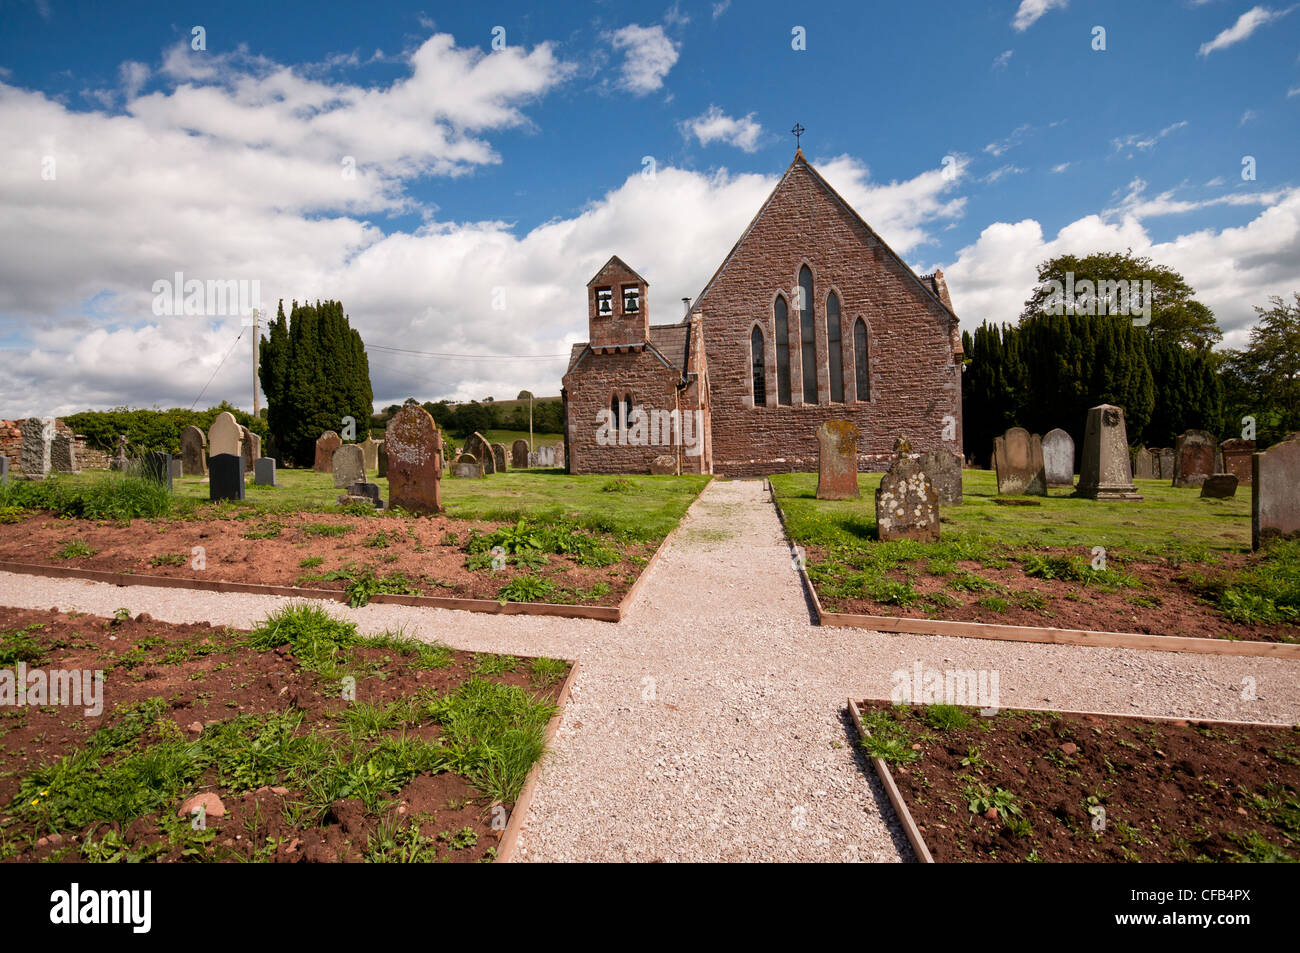 St Michaels Church, Ainstable in the Eden Valley, Cumbria - Stock Image